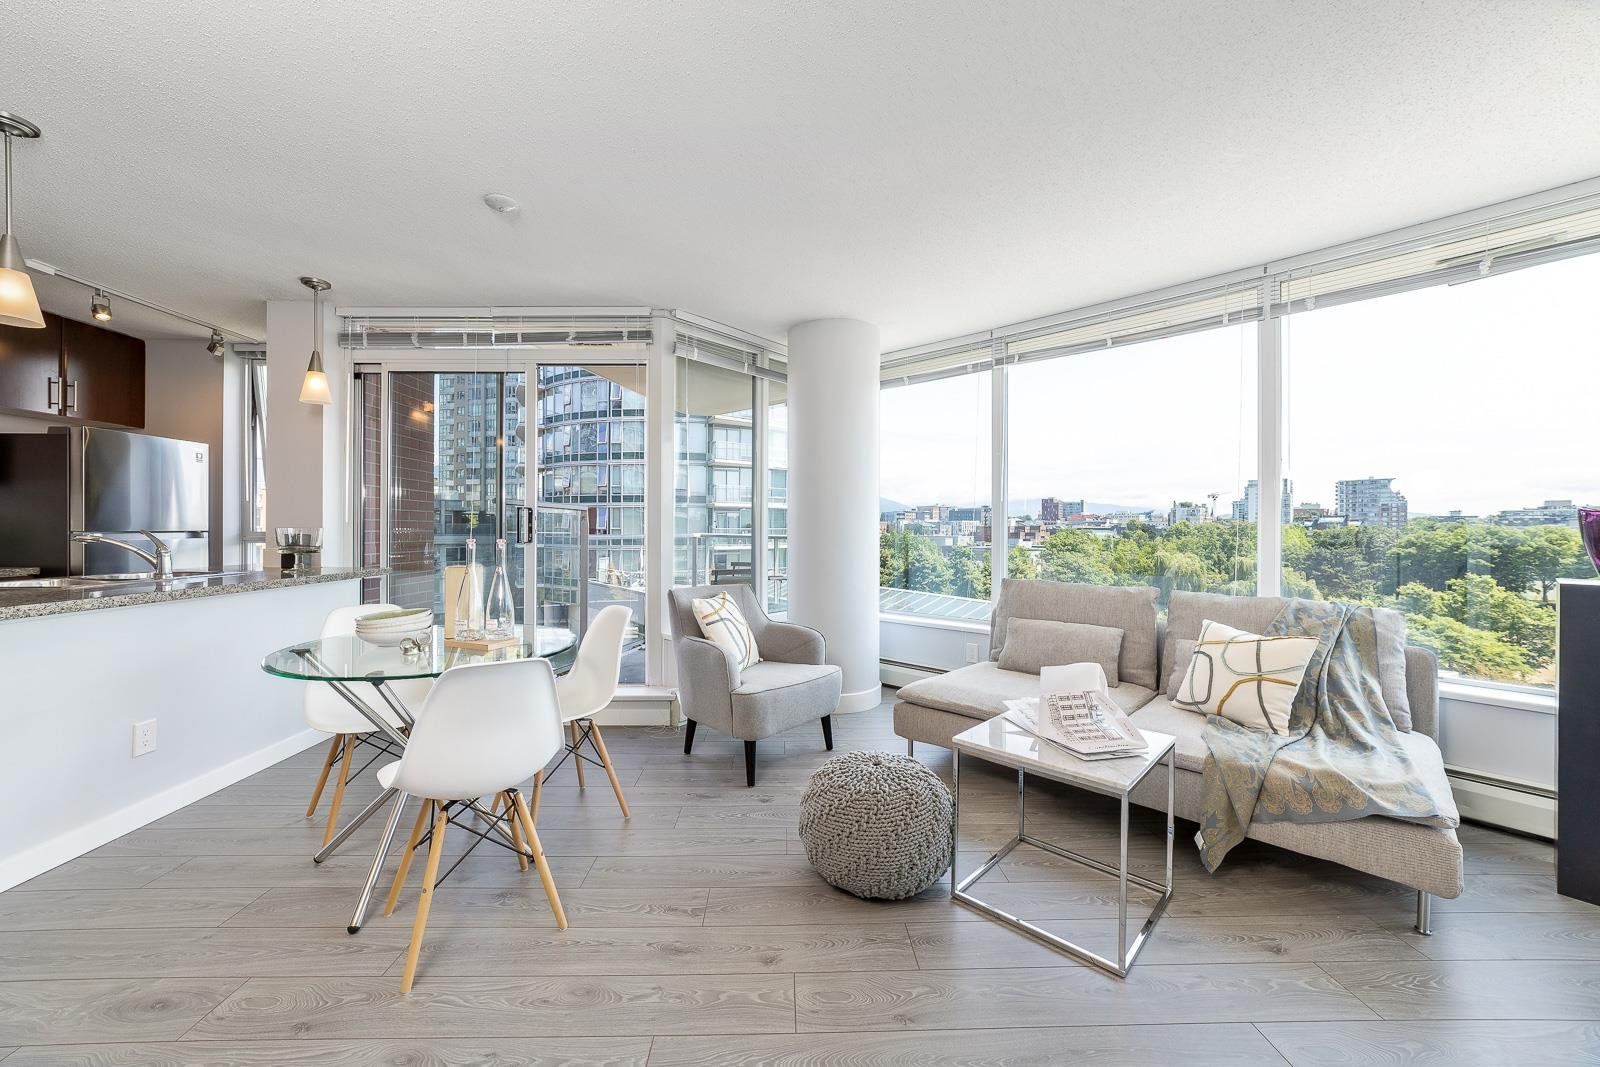 """Main Photo: 709 688 ABBOTT Street in Vancouver: Downtown VW Condo for sale in """"Firenze II"""" (Vancouver West)  : MLS®# R2599532"""